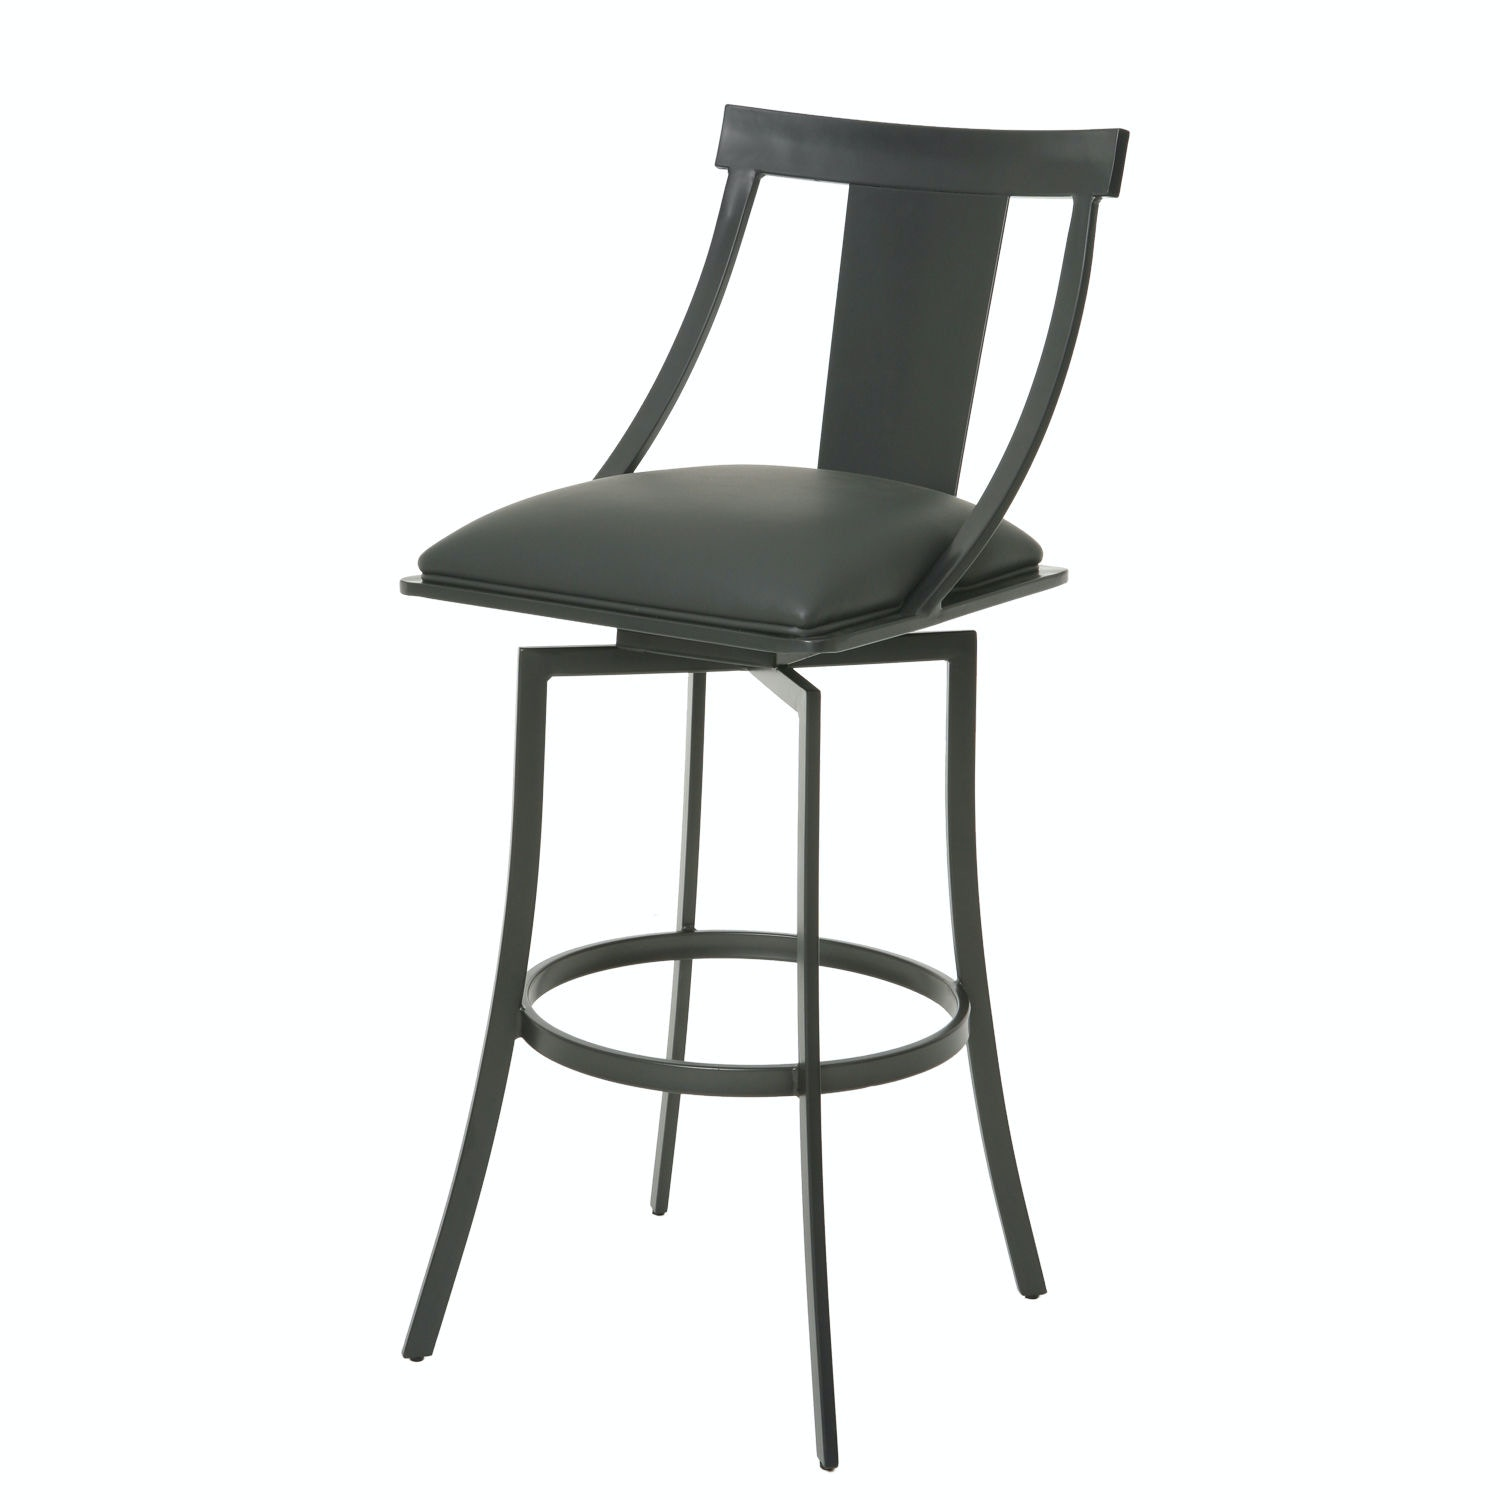 Pastel Furniture Amrita Swivel Barstool AA 219 SG 064 26